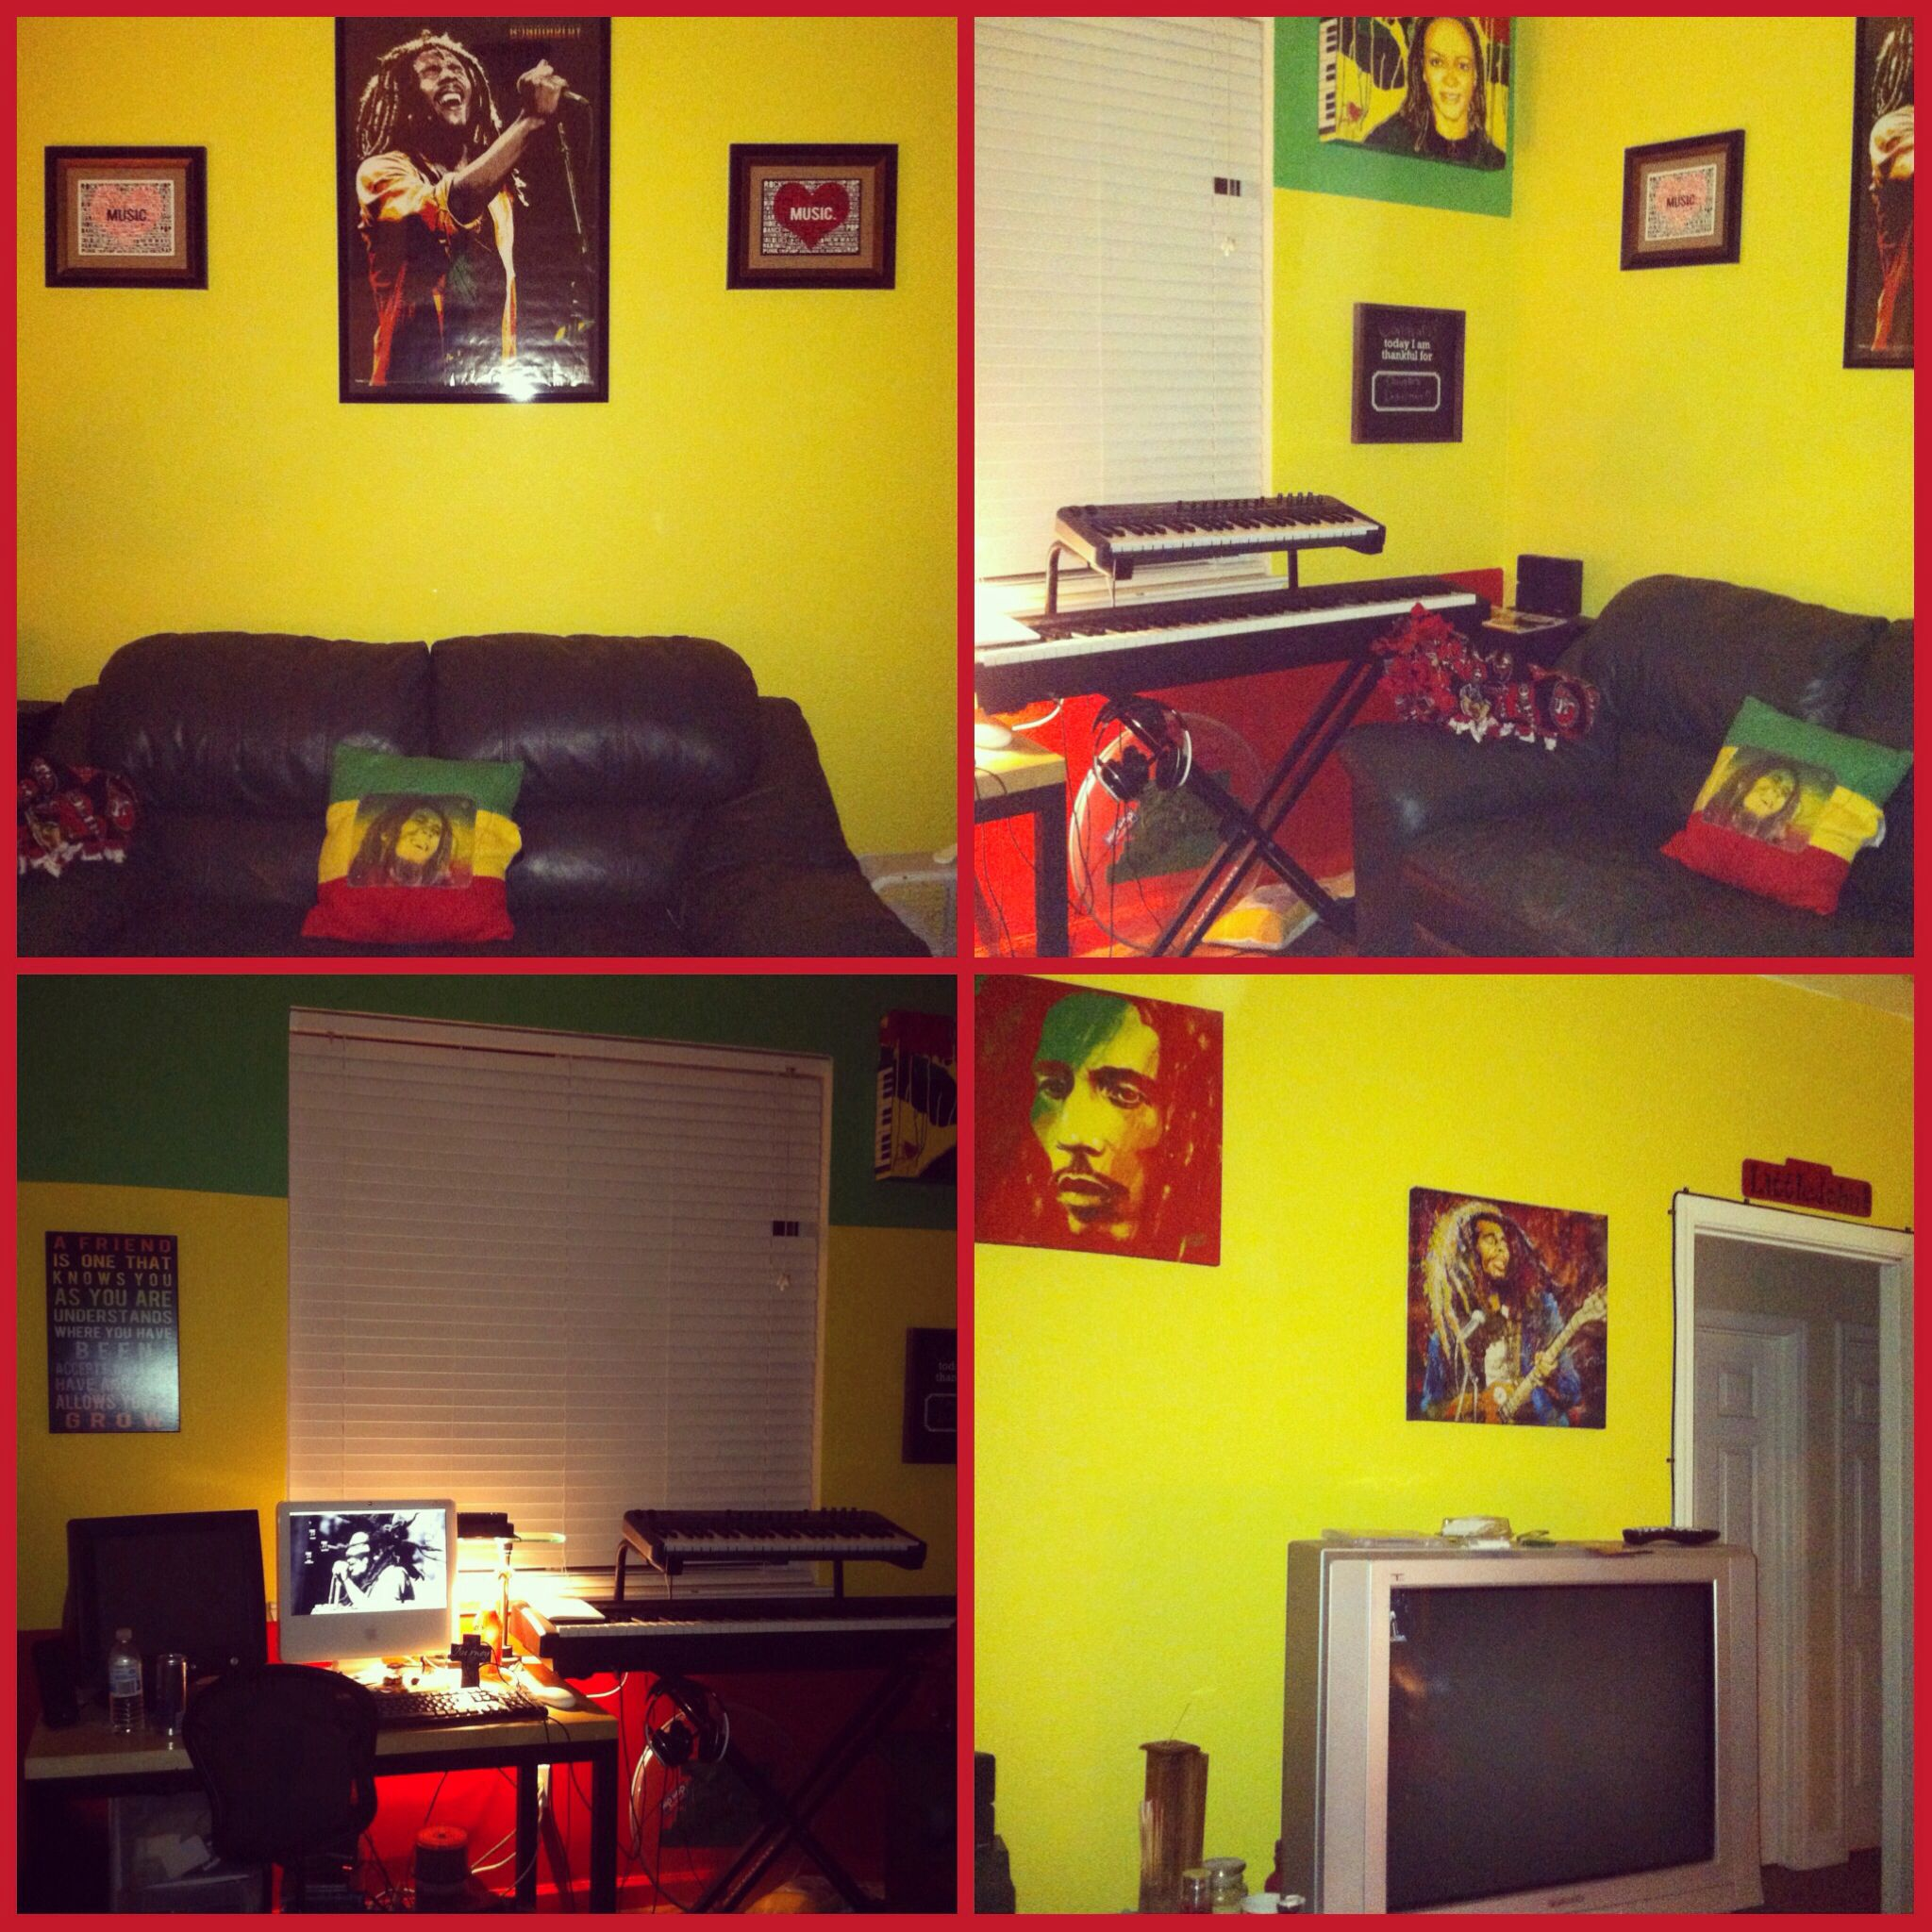 My Rasta Bob Marley themed room. My Rasta Bob Marley themed room    Room painting ideas   Pinterest